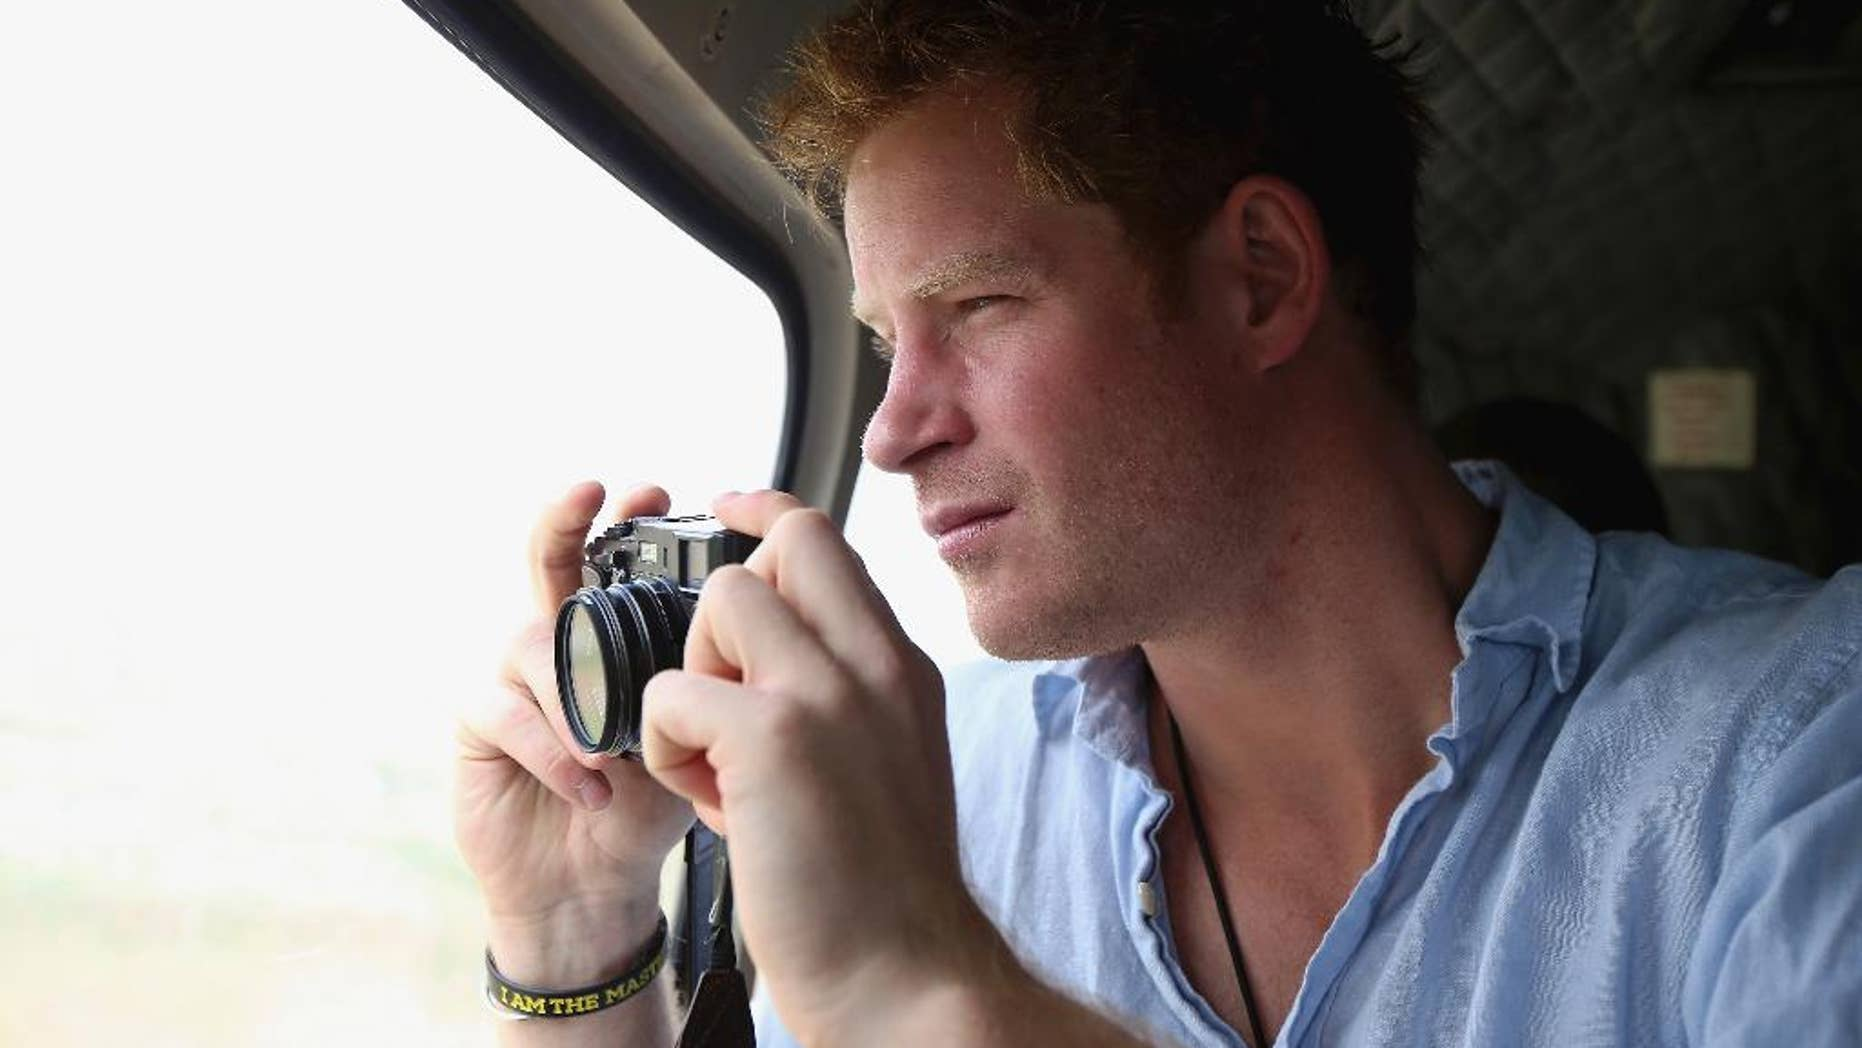 FILE - In this Dec 8, 2014, file photo, Prince Harry takes a photograph out of the window of a helicopter as he travels over the Muluti Mountains on his way to visit a herd boy night school constructed by his Sentebale charity, in Mokhotlong, Lesotho. Prince Harry has been on a private visit to Kruger National Park, South Africa's flagship wildlife park, where poachers have killed rhinos in record numbers and clashed with rangers, the service said in a statement emailed Thursday, Aug. 13, 2015, to The Associated Press. (Chris Jackson/Pool Photo via AP, File)